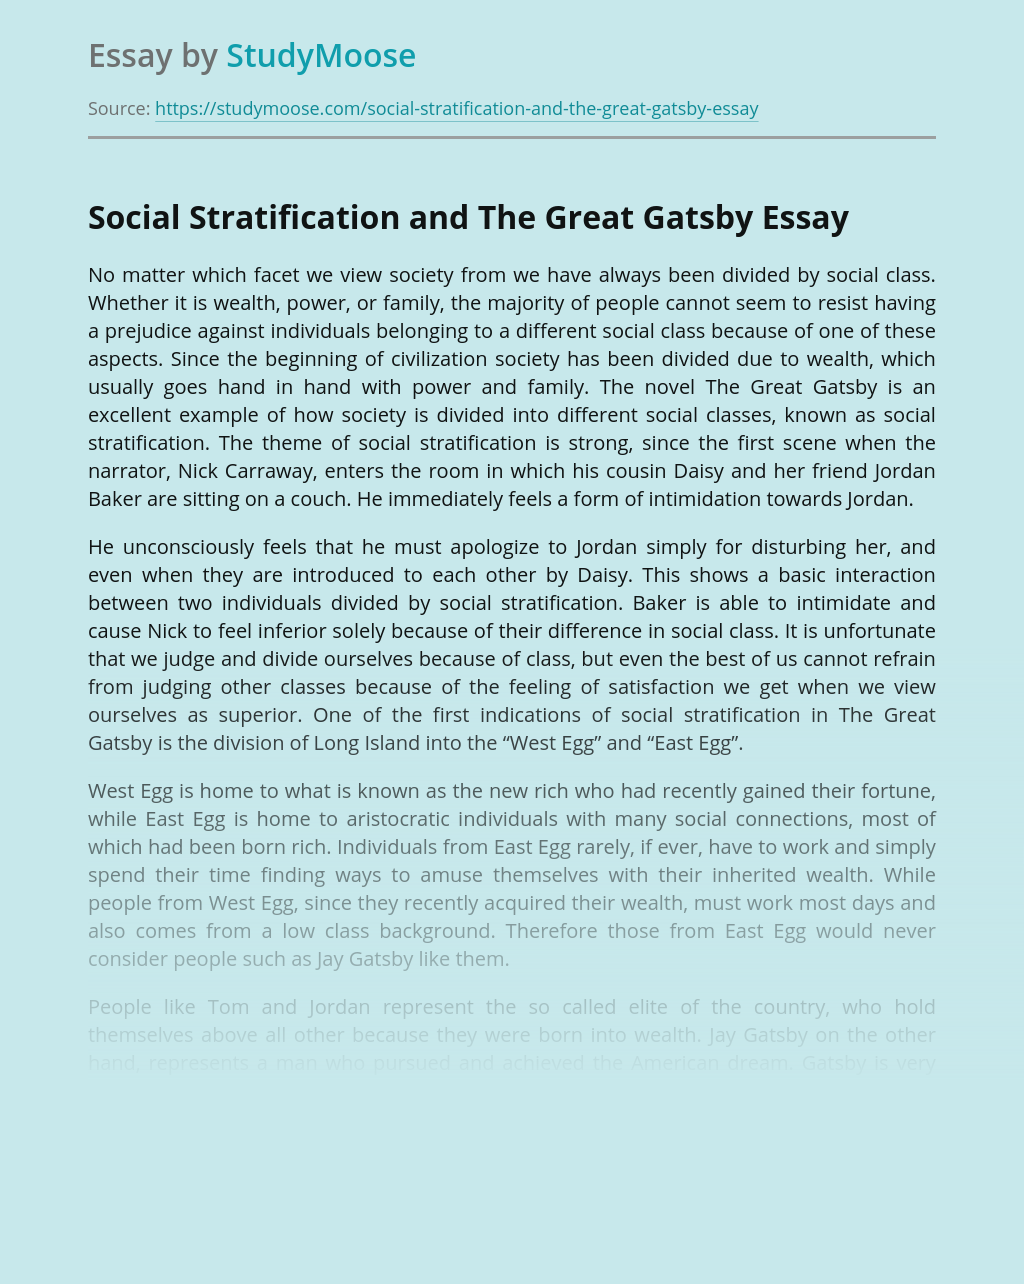 Social Stratification and The Great Gatsby